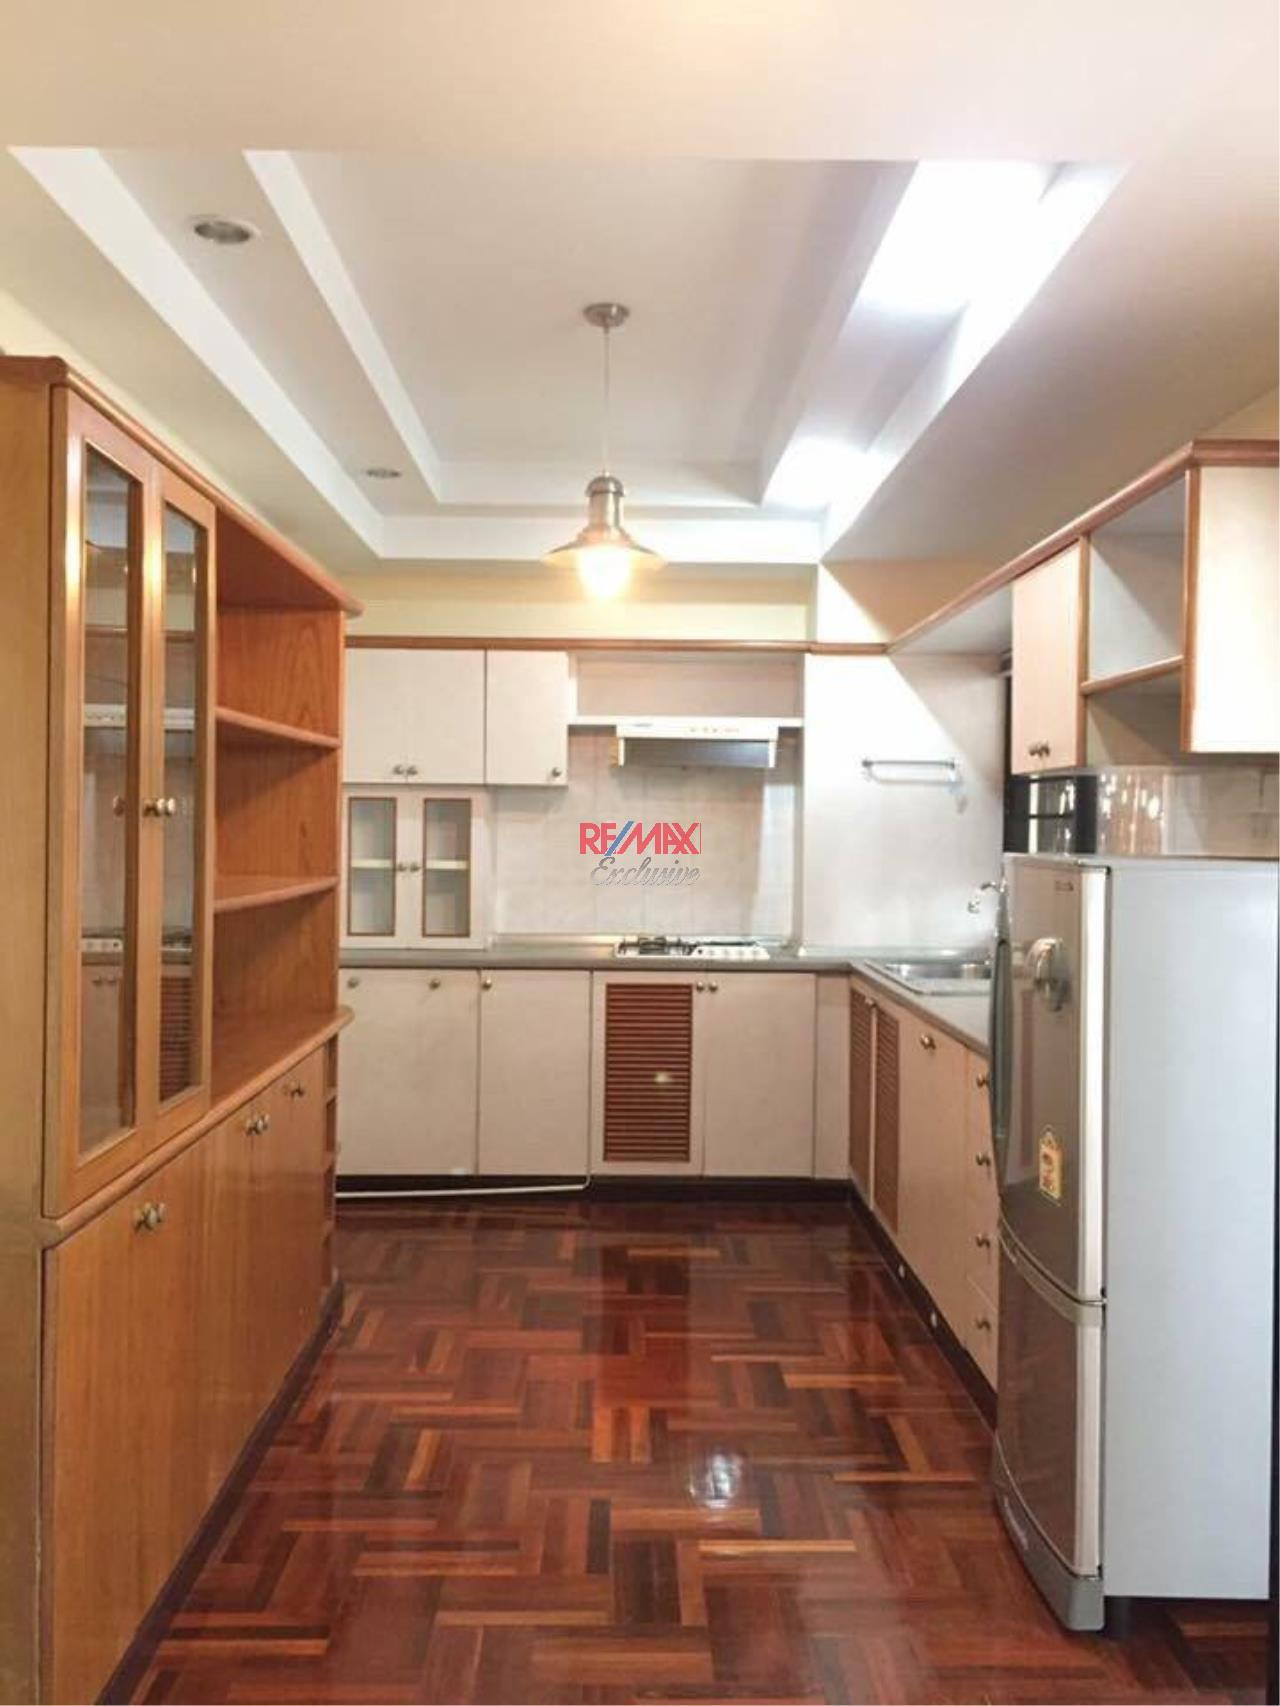 RE/MAX Exclusive Agency's Spacious 2 BR for rent near BTS Onnut, Sukhumvit 50. 3